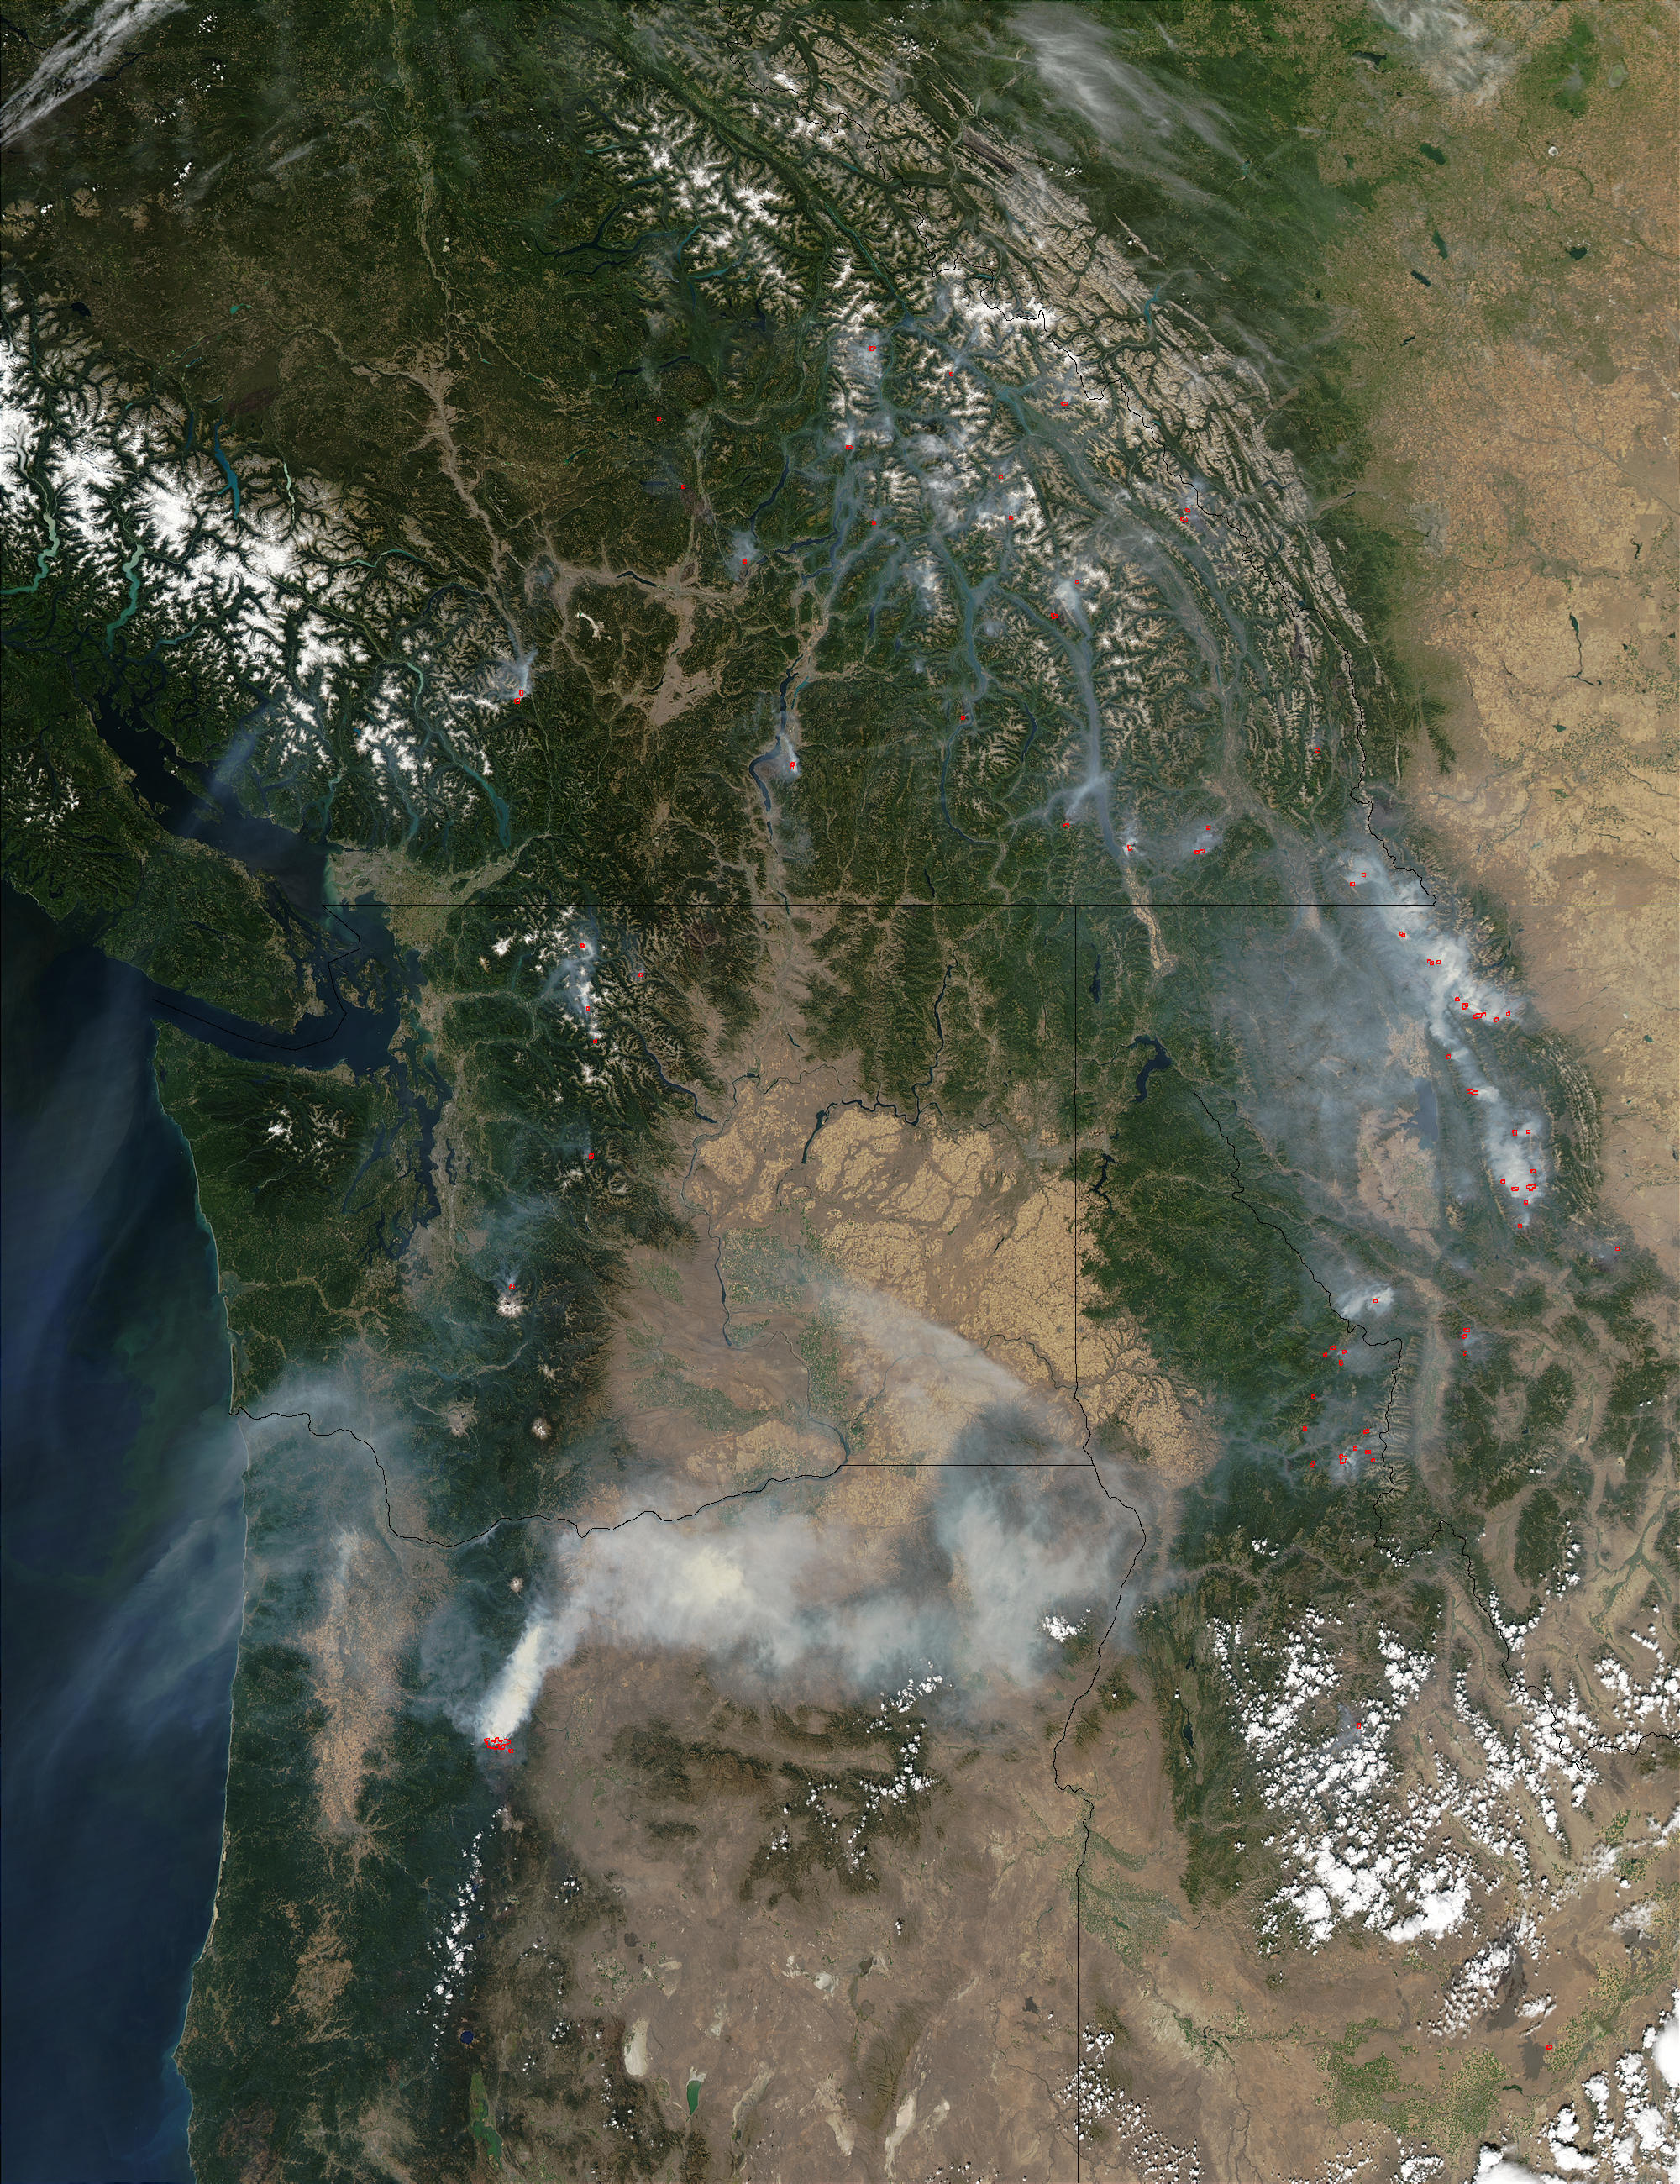 Image of Aqua/MODIS 2003/245 20:55 UTC Fires and smoke in the Pacific Northwest, Pixel size 500m